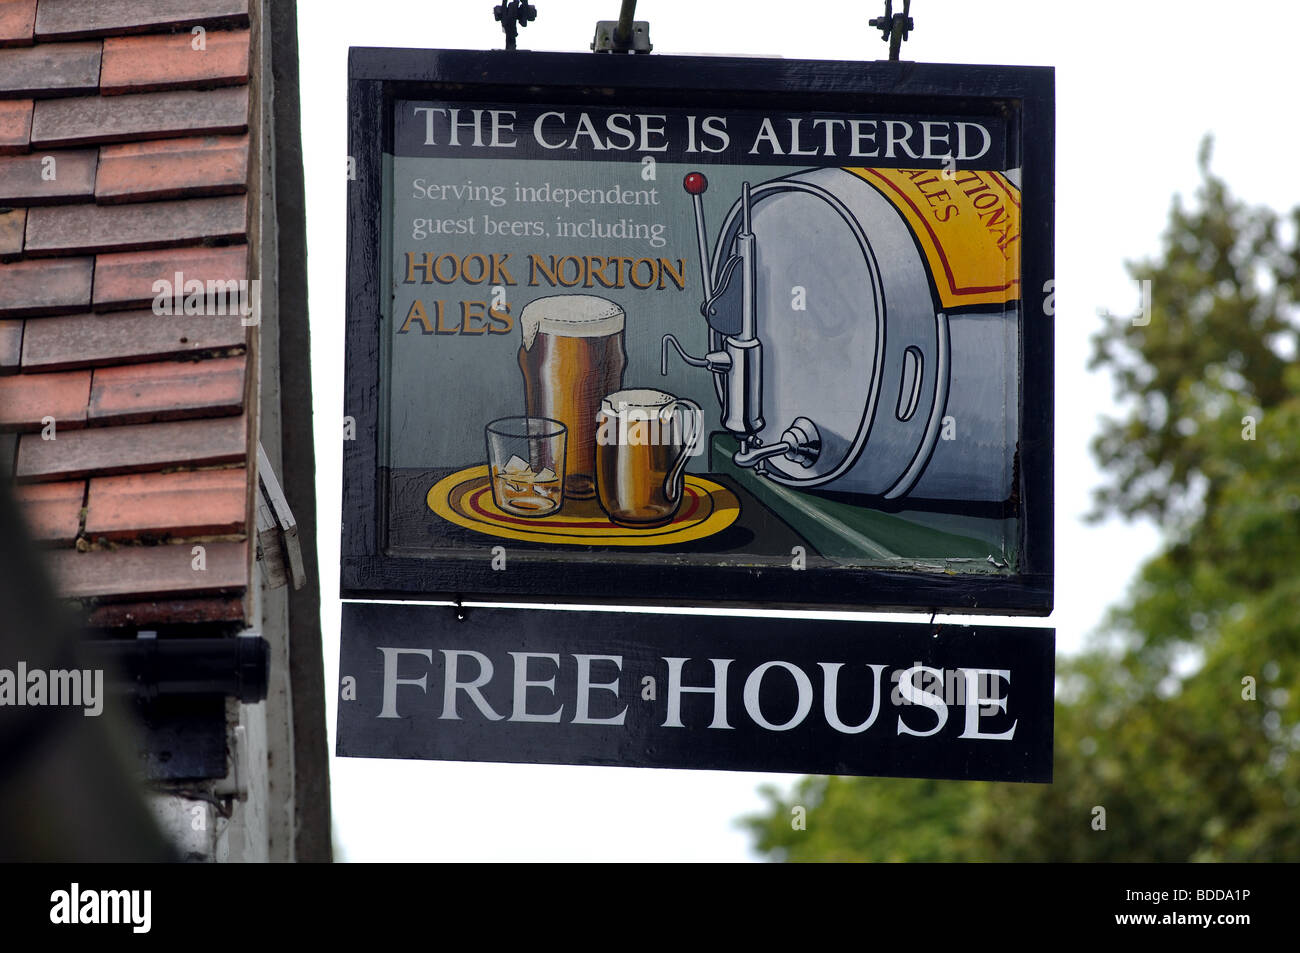 The Case is Altered pub sign, Hatton, Warwickshire, England, UK - Stock Image